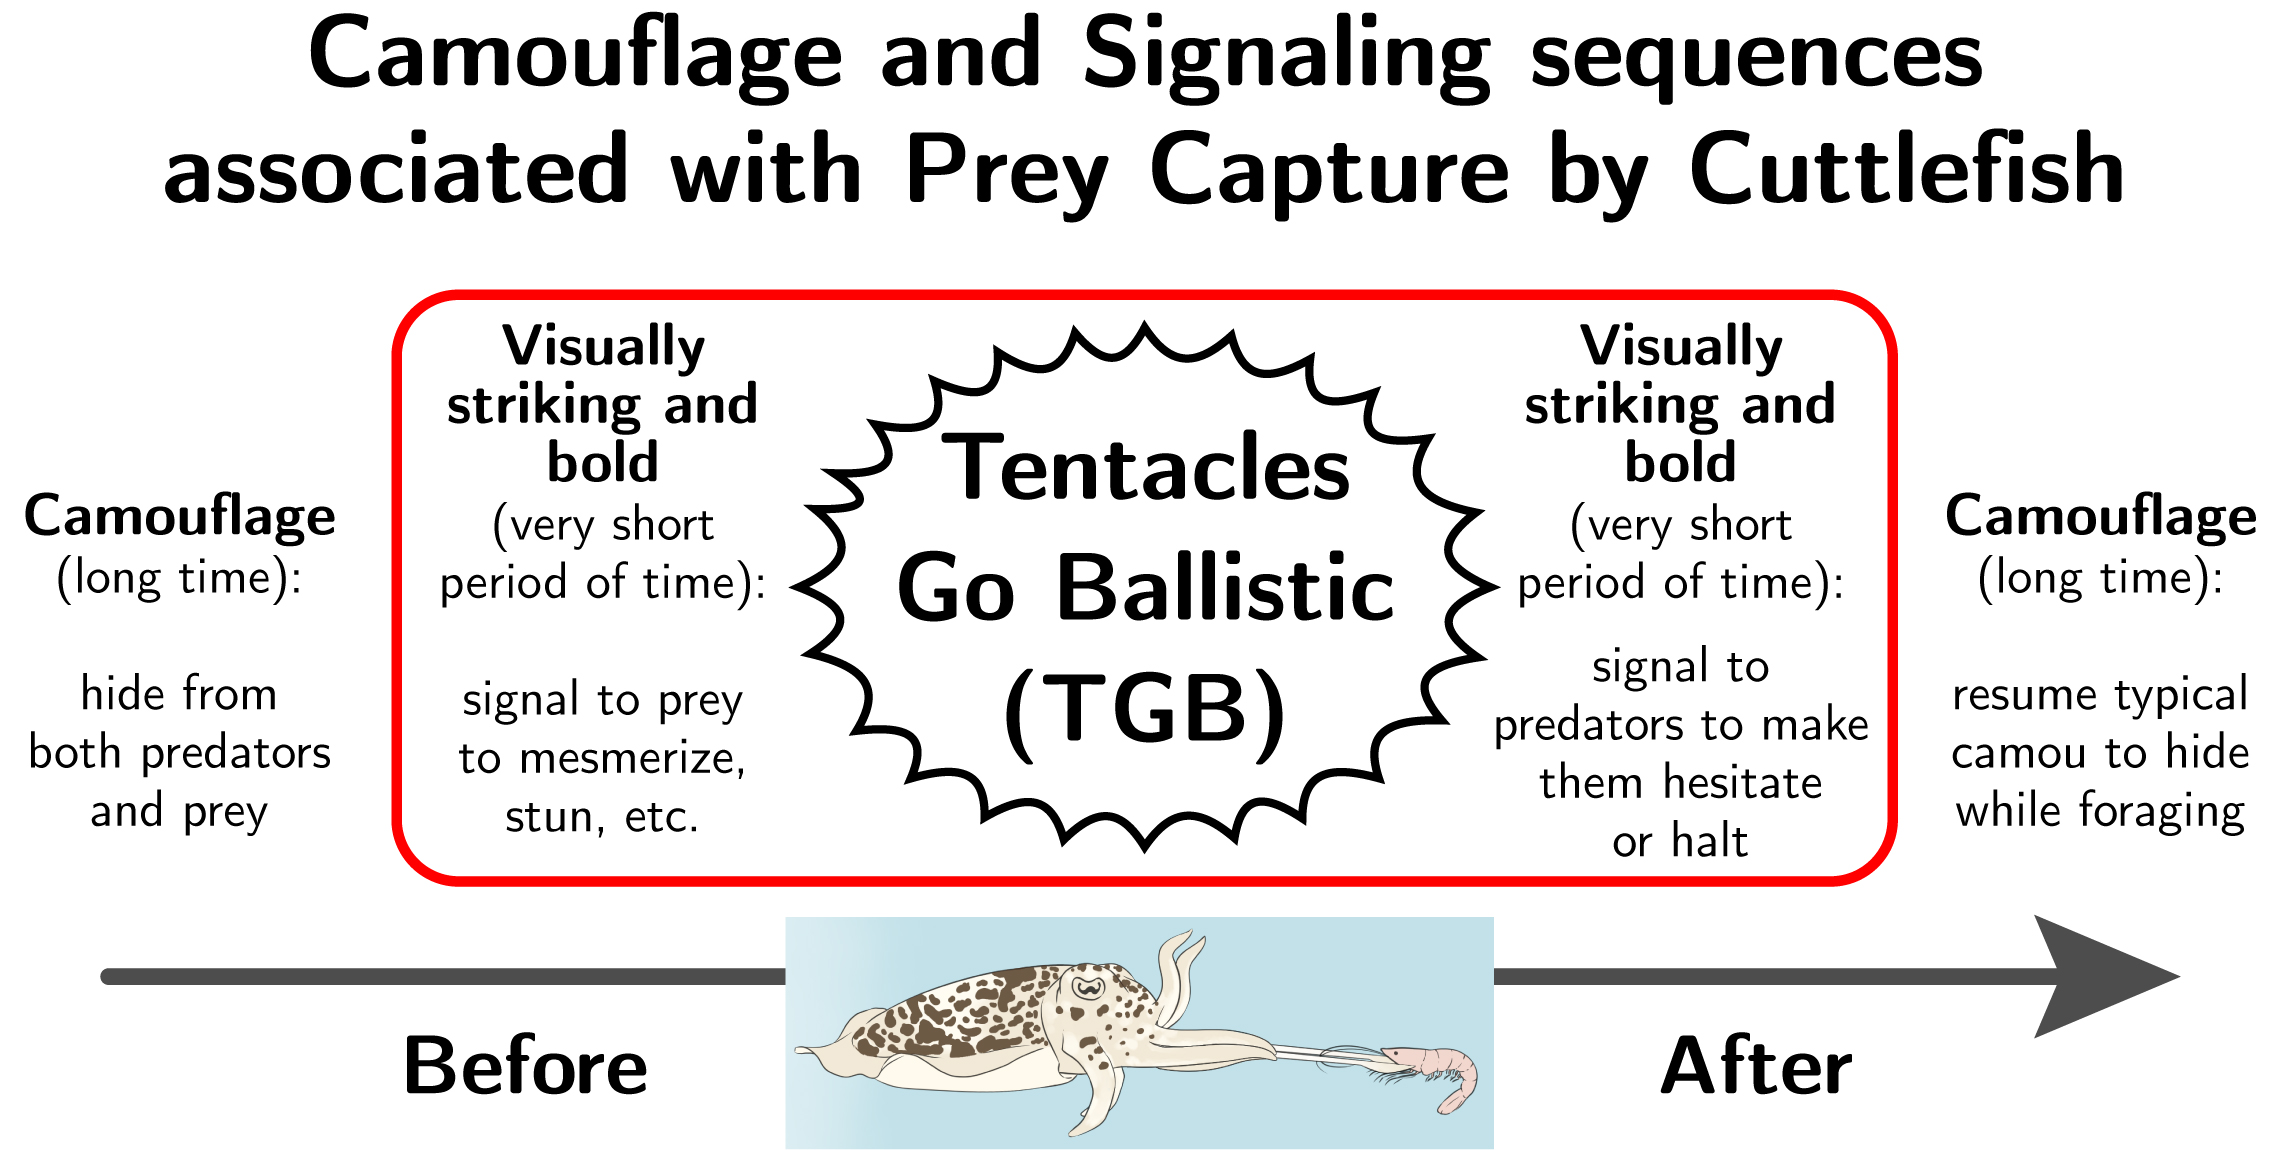 Camouflage and signaling sequences associated with prey capture by cuttlefish